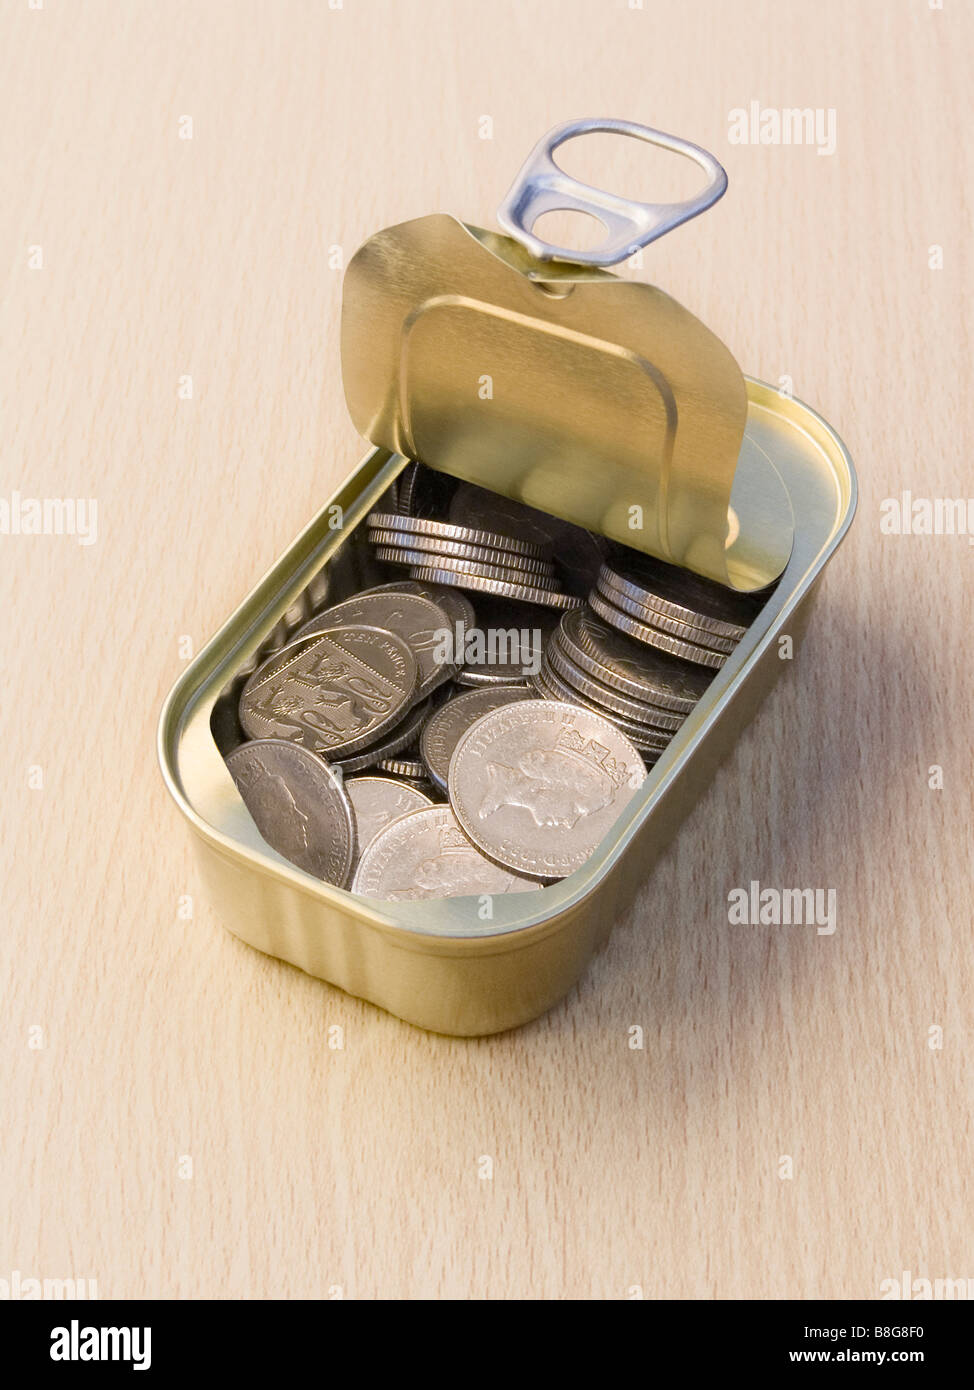 Ring Pull Tin Can Containing Ten Pence Pieces on a Wooden Surface - Stock Image